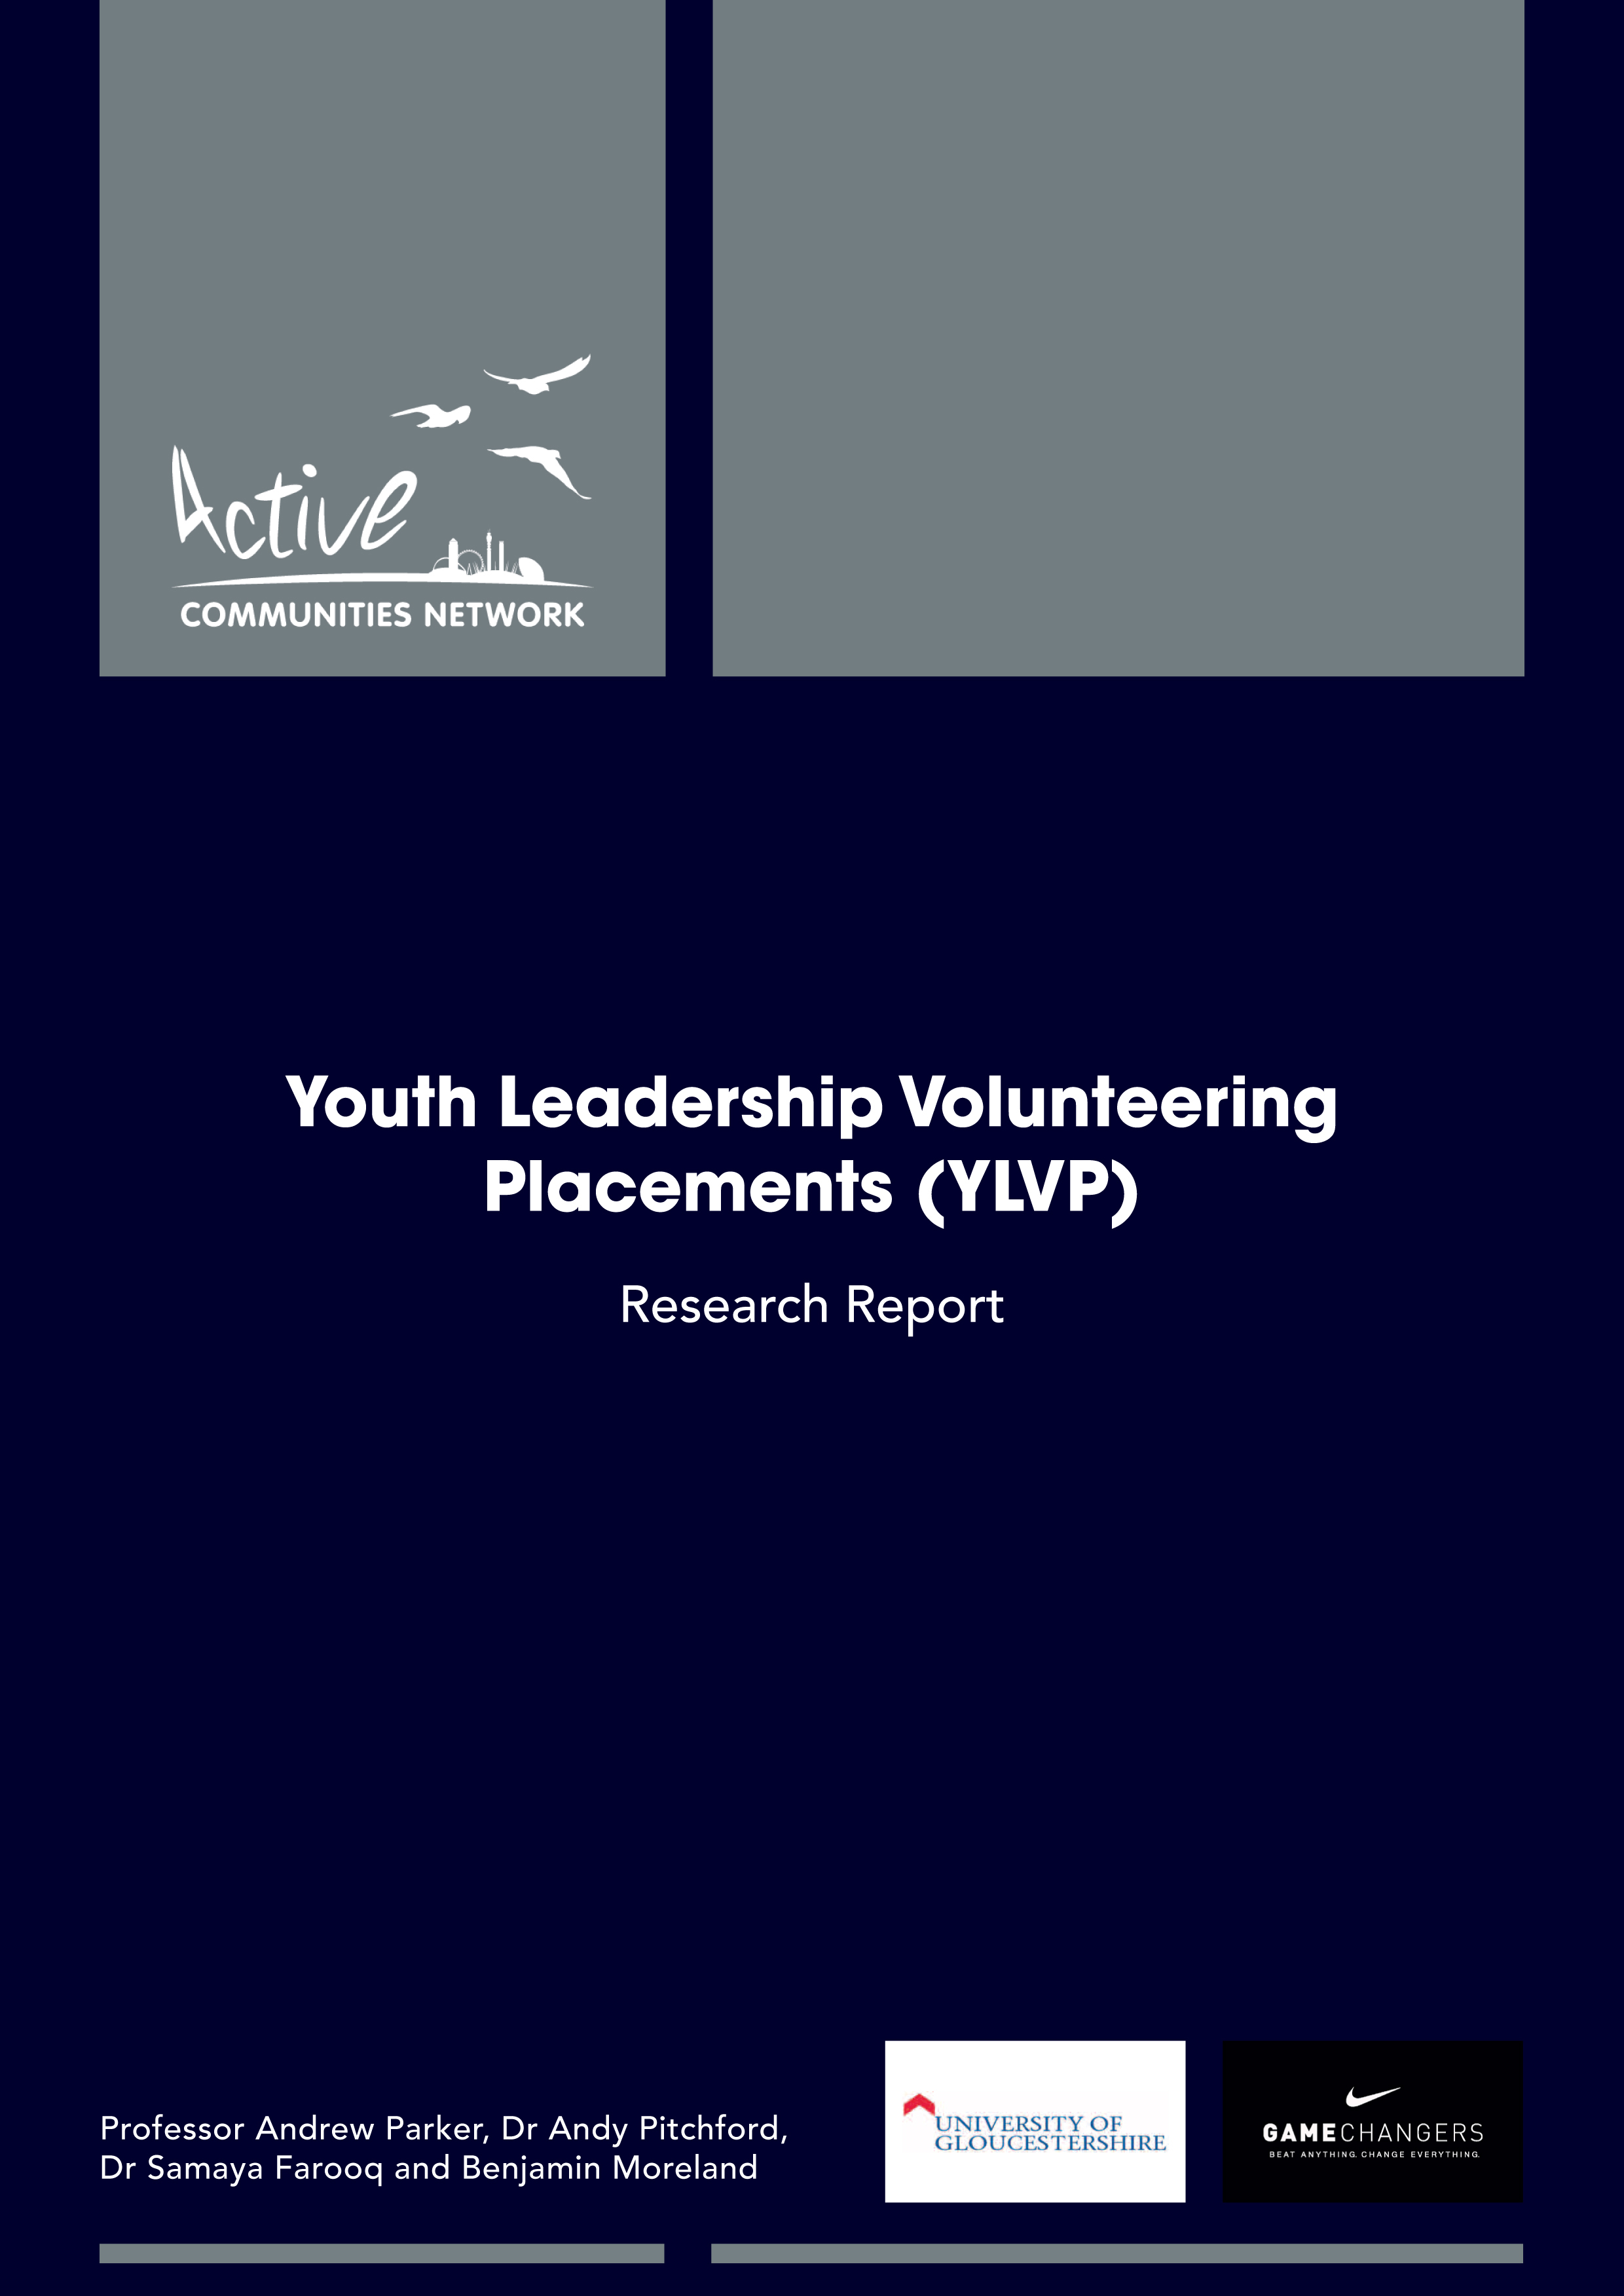 Youth Leadership Volunteering Placements